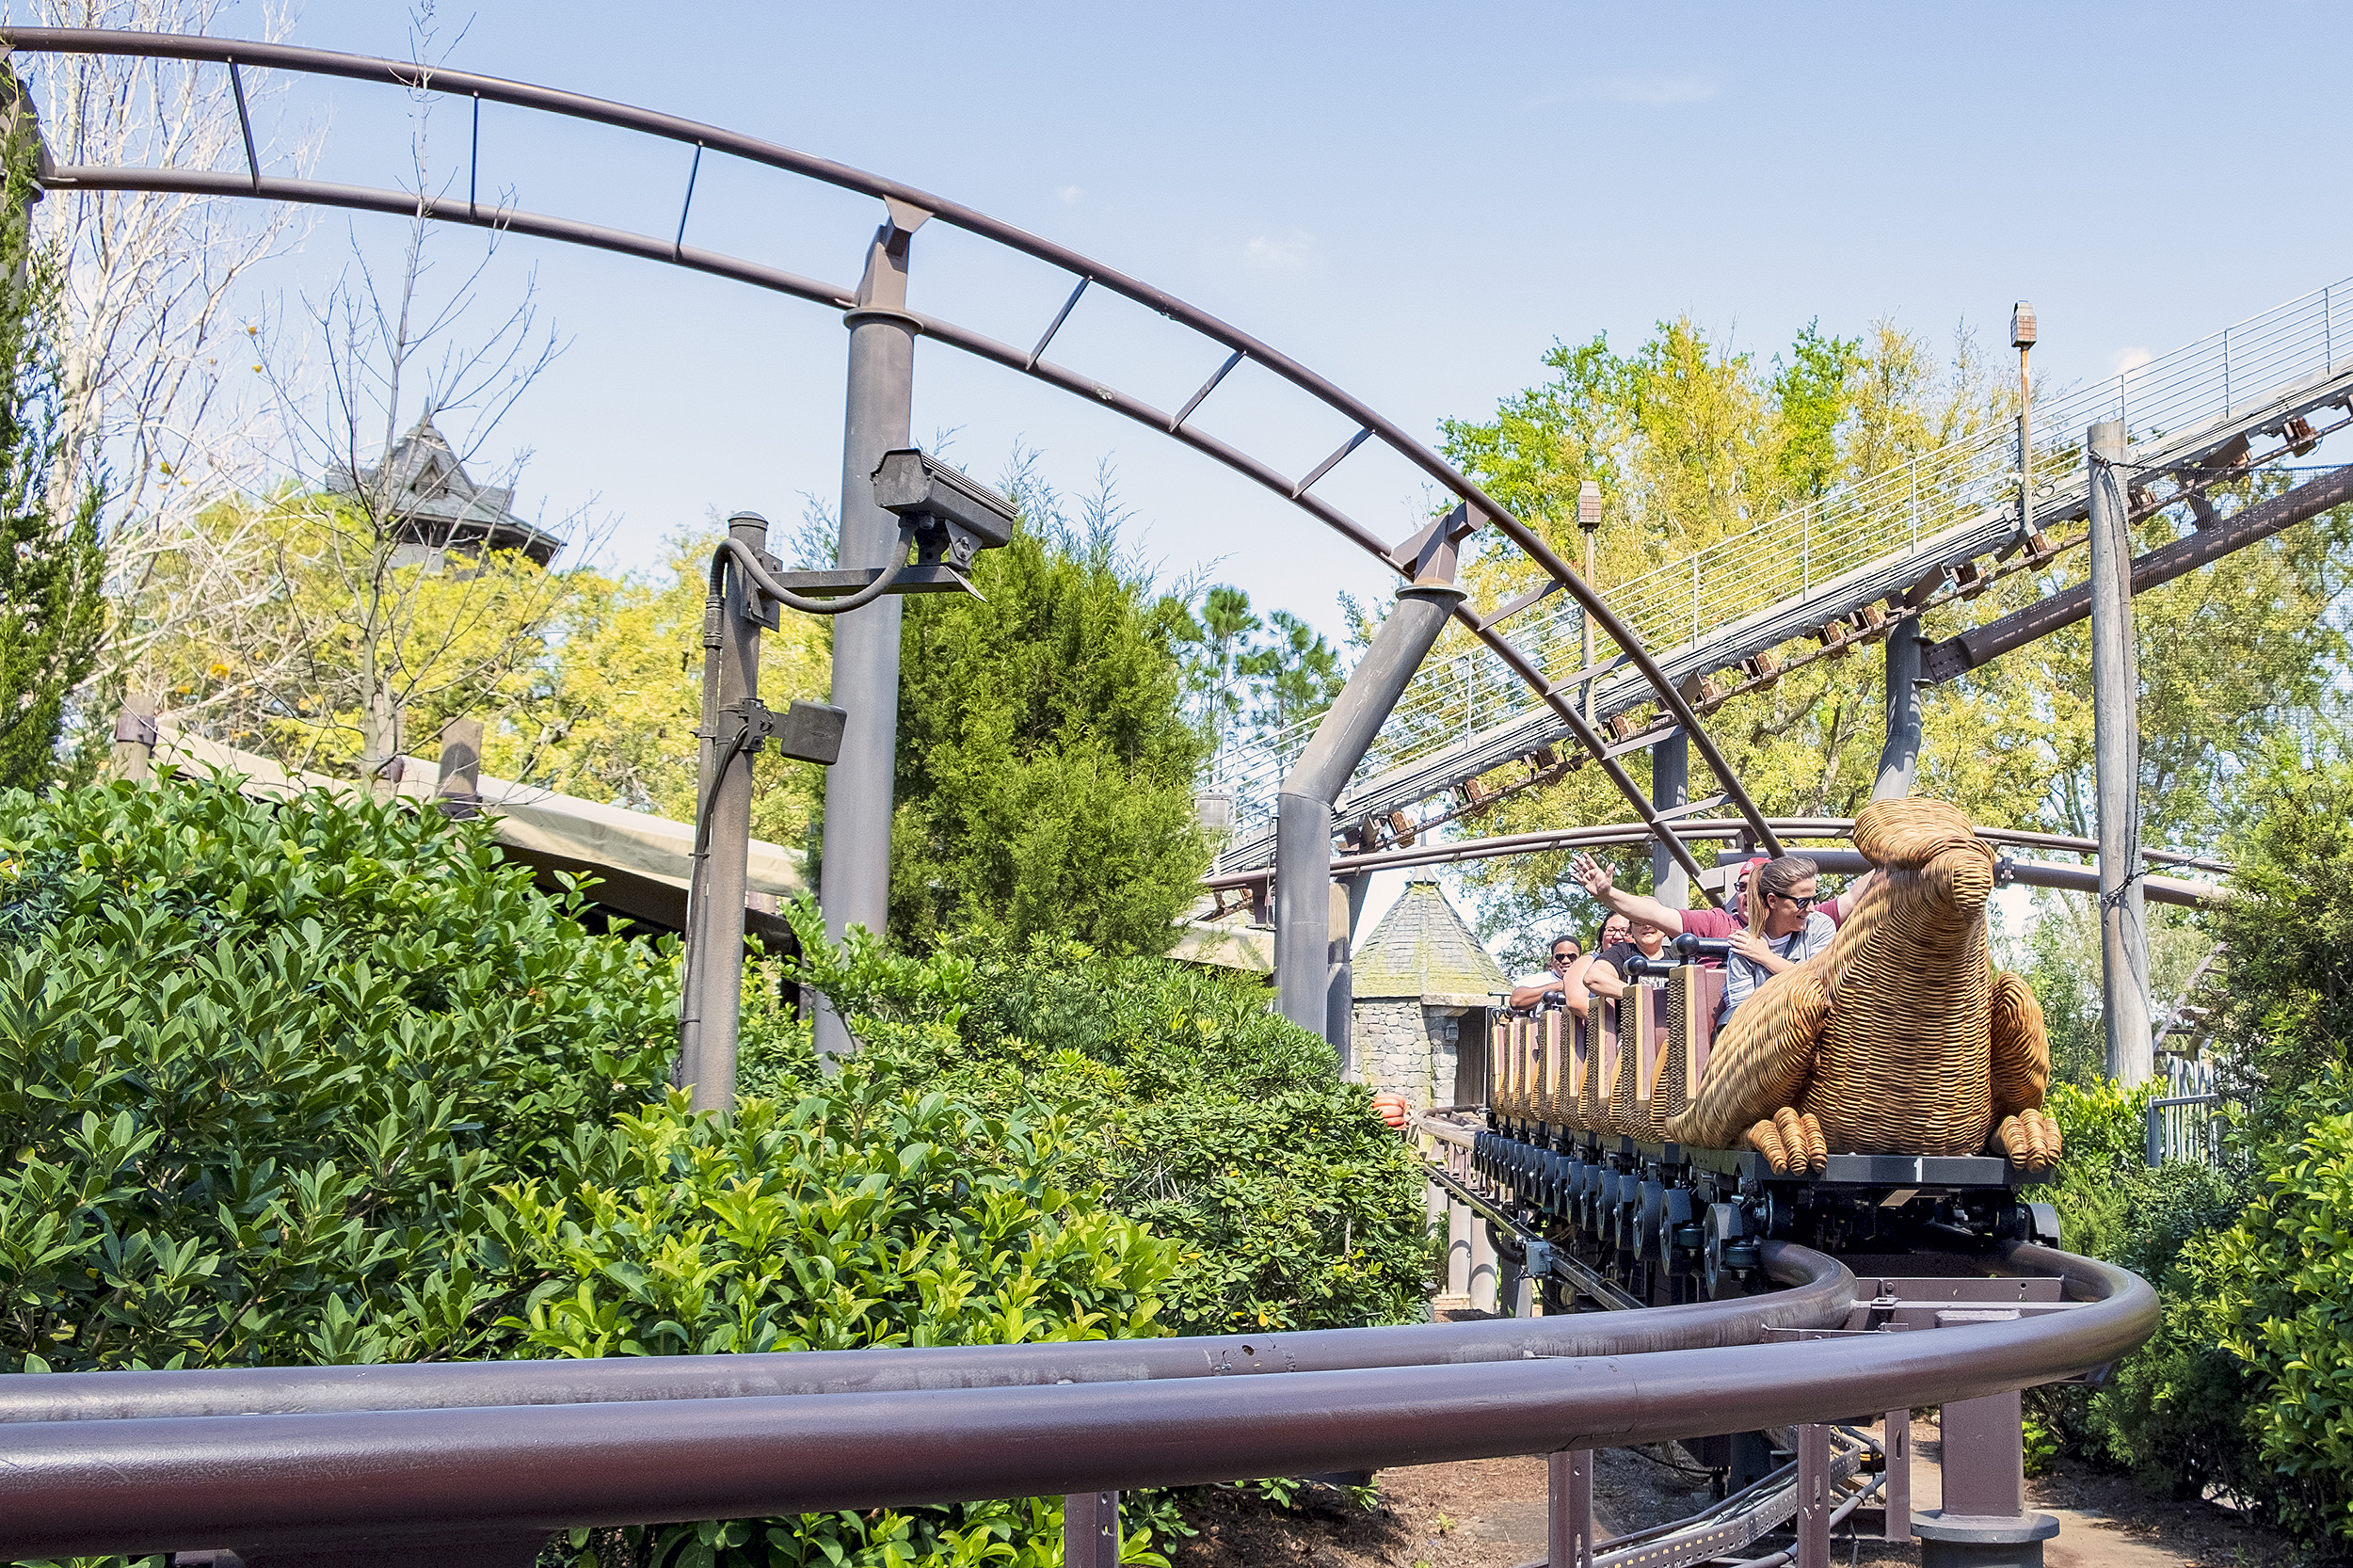 Flight of the Hippogriff The Wizarding World of Harry Potter Orlando